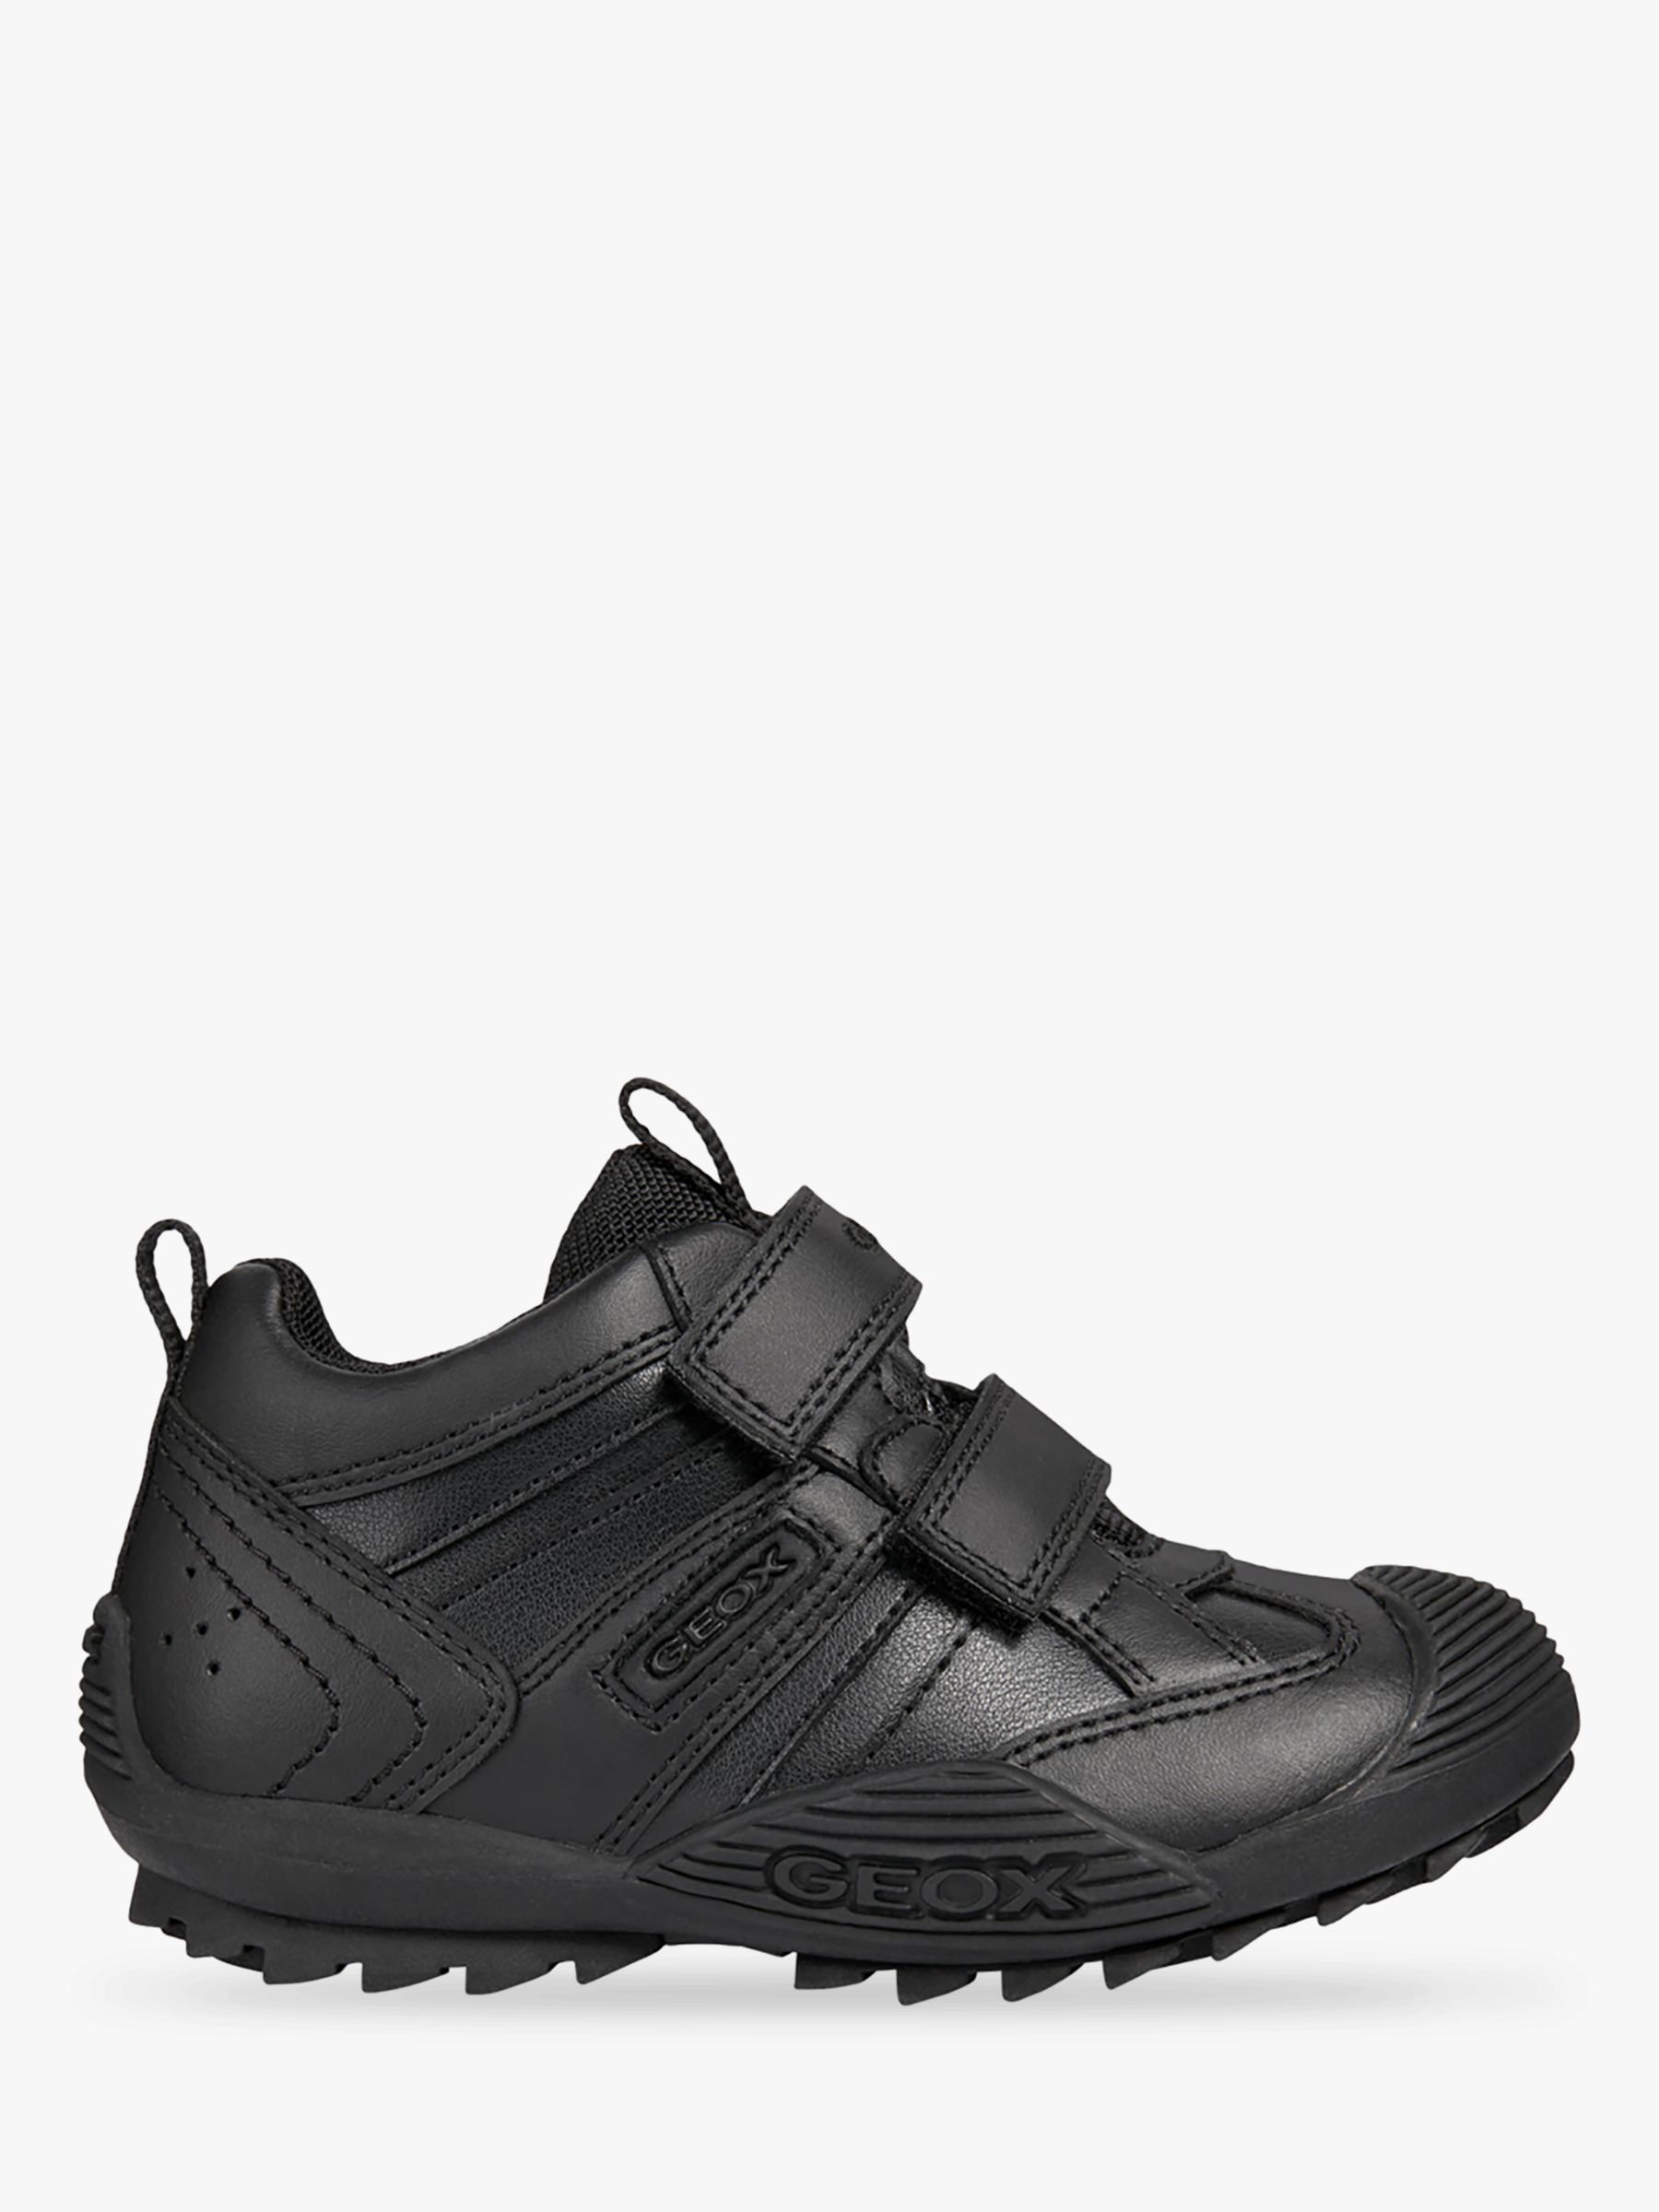 56f226077d Geox Children's Savage Shoes, Black at John Lewis & Partners